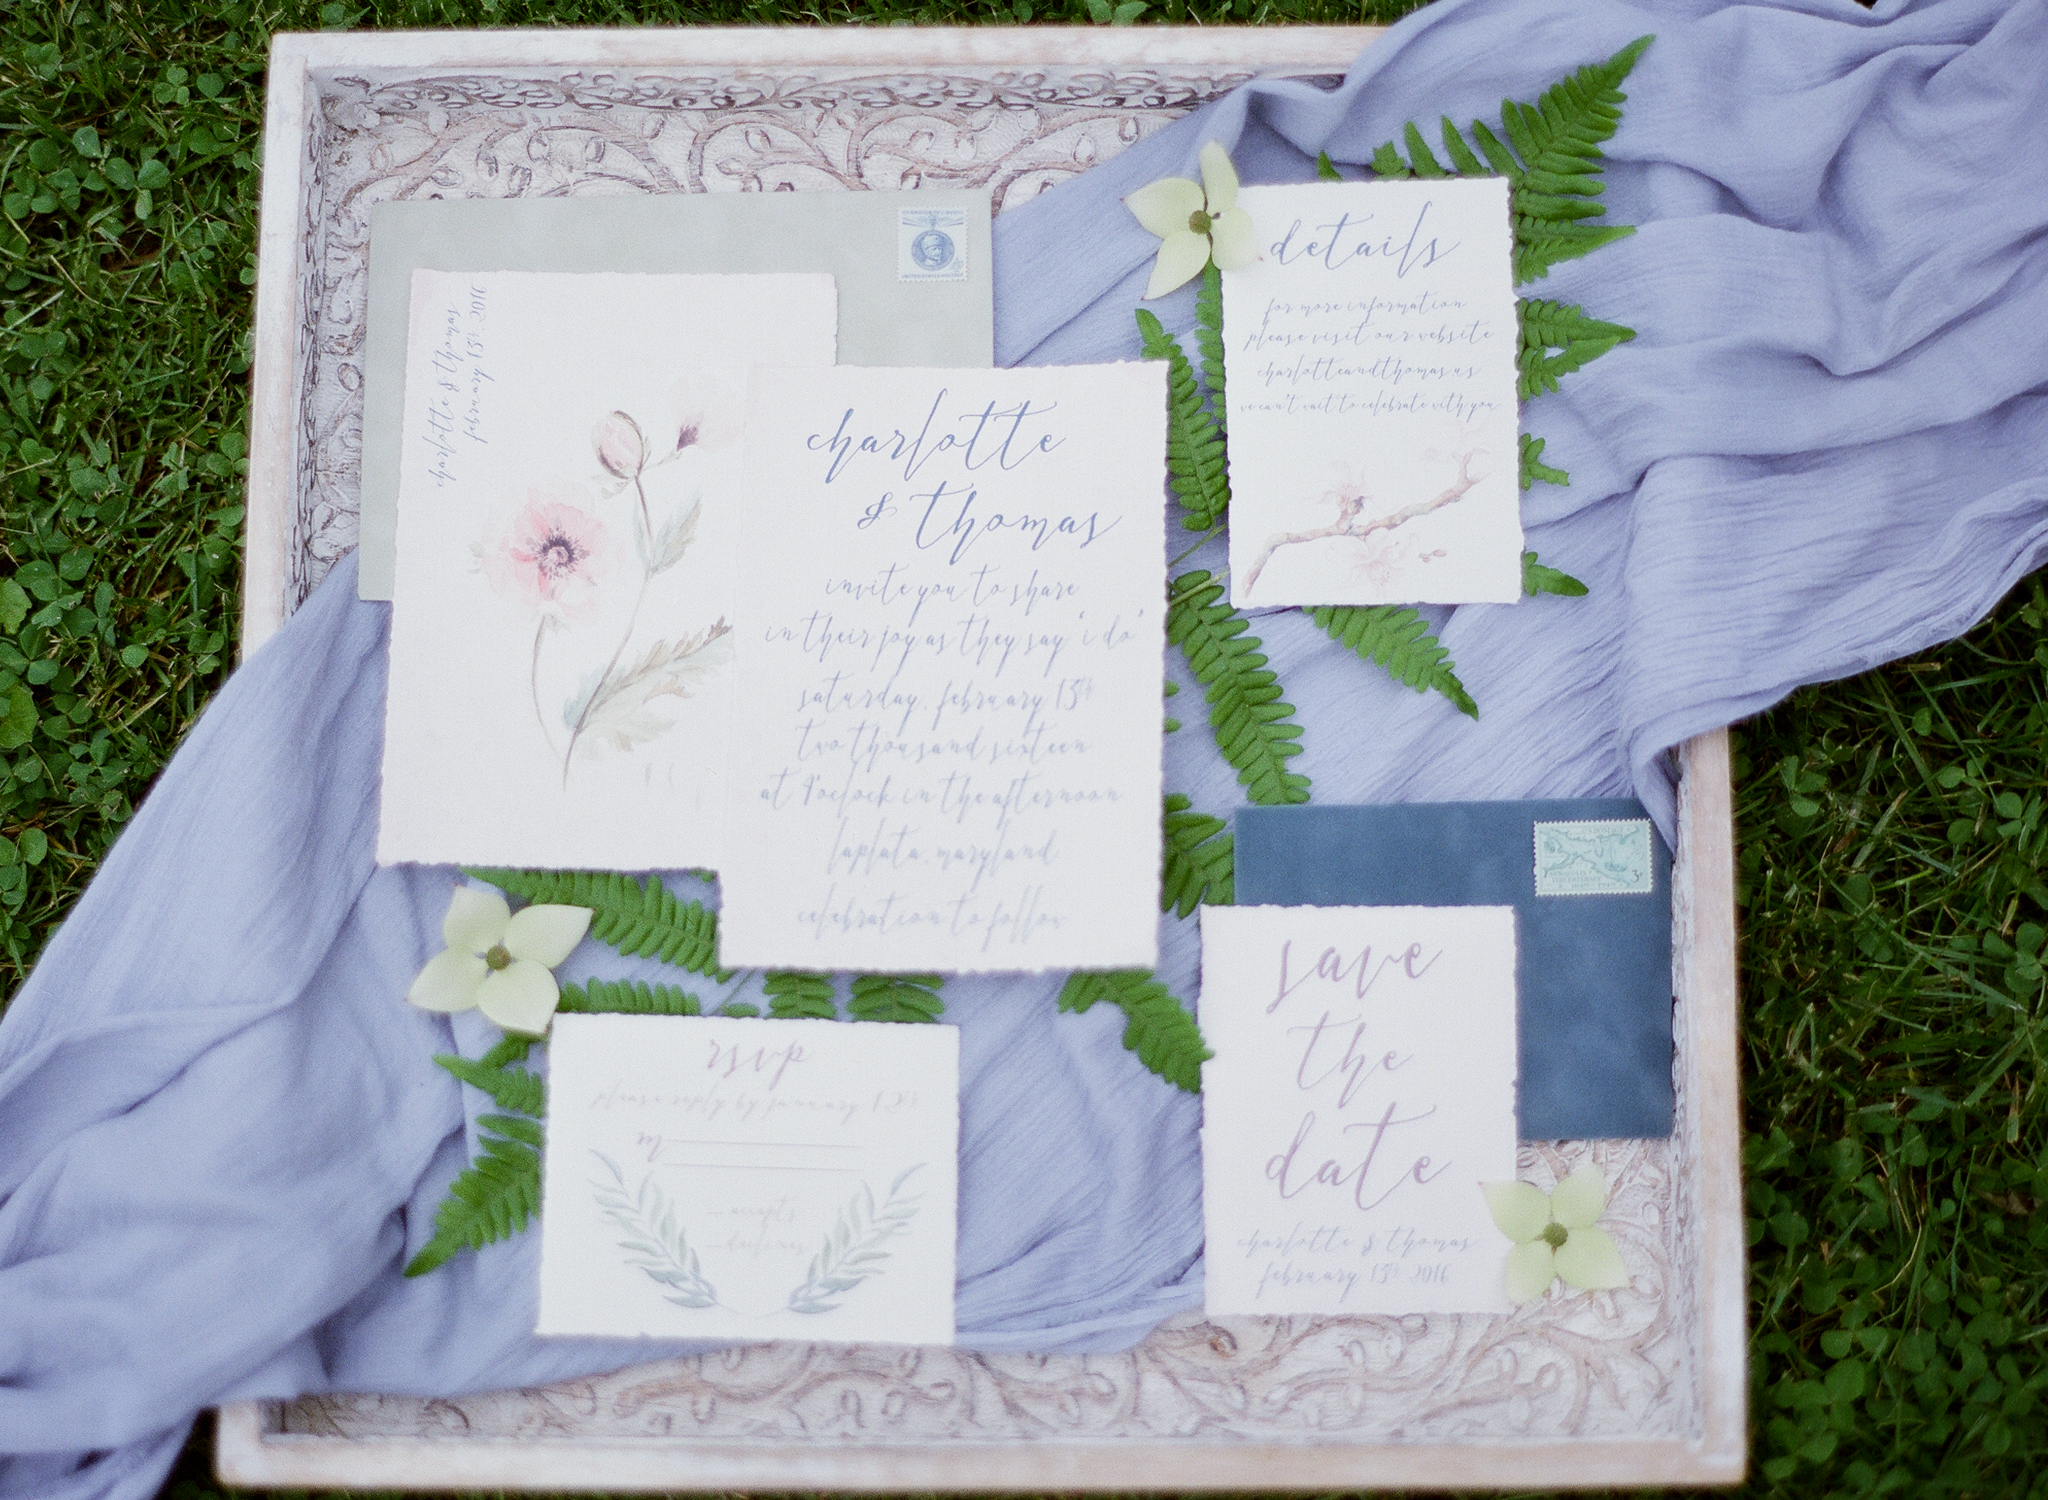 Pantone Color of the Year 2017 | Organic Wedding | Melanie Zacek | Joy Wed | http://www.joy-wed.com